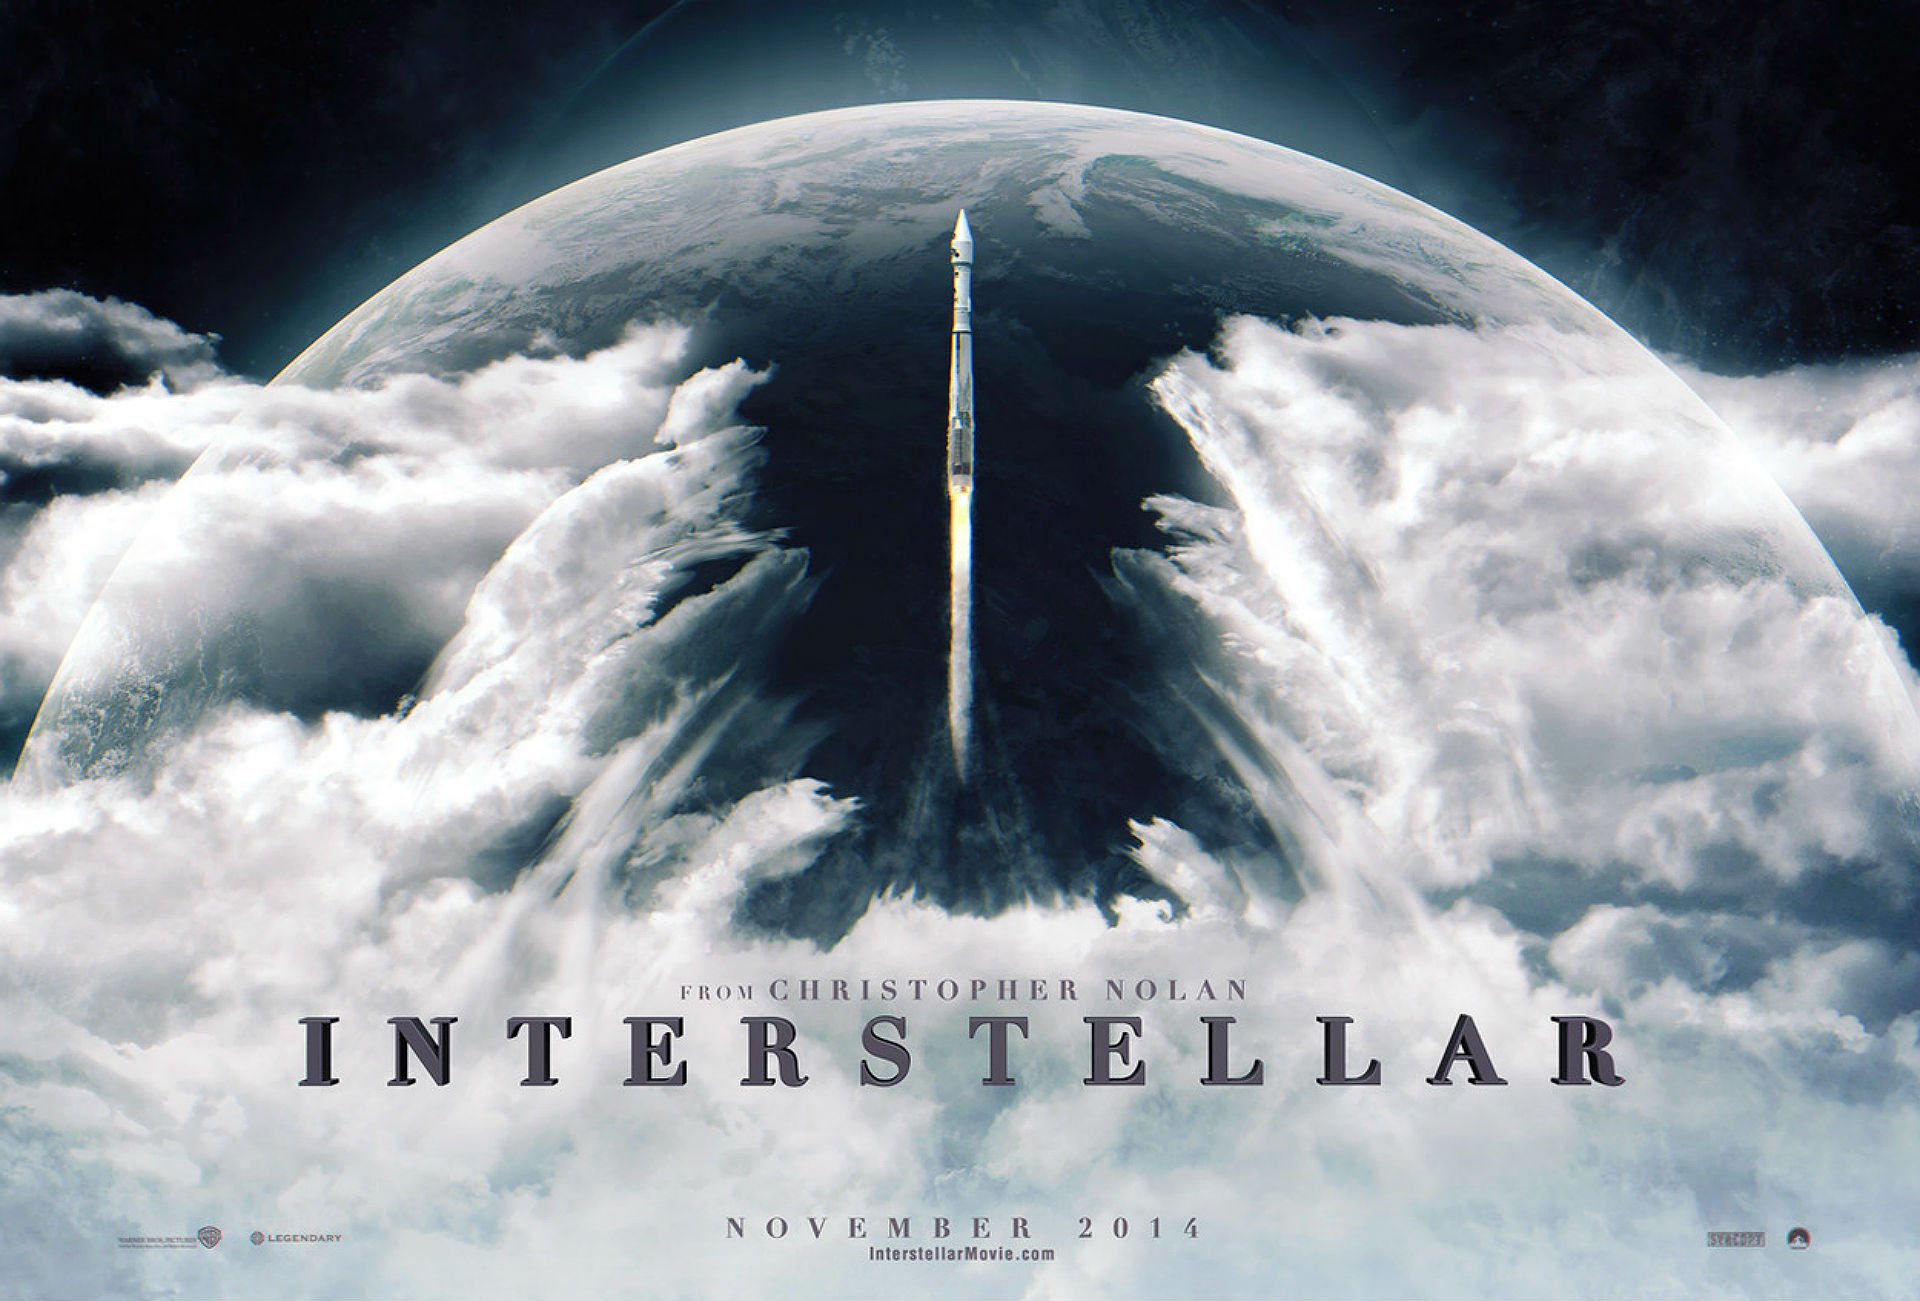 Interstellar-poster_kadinsanat